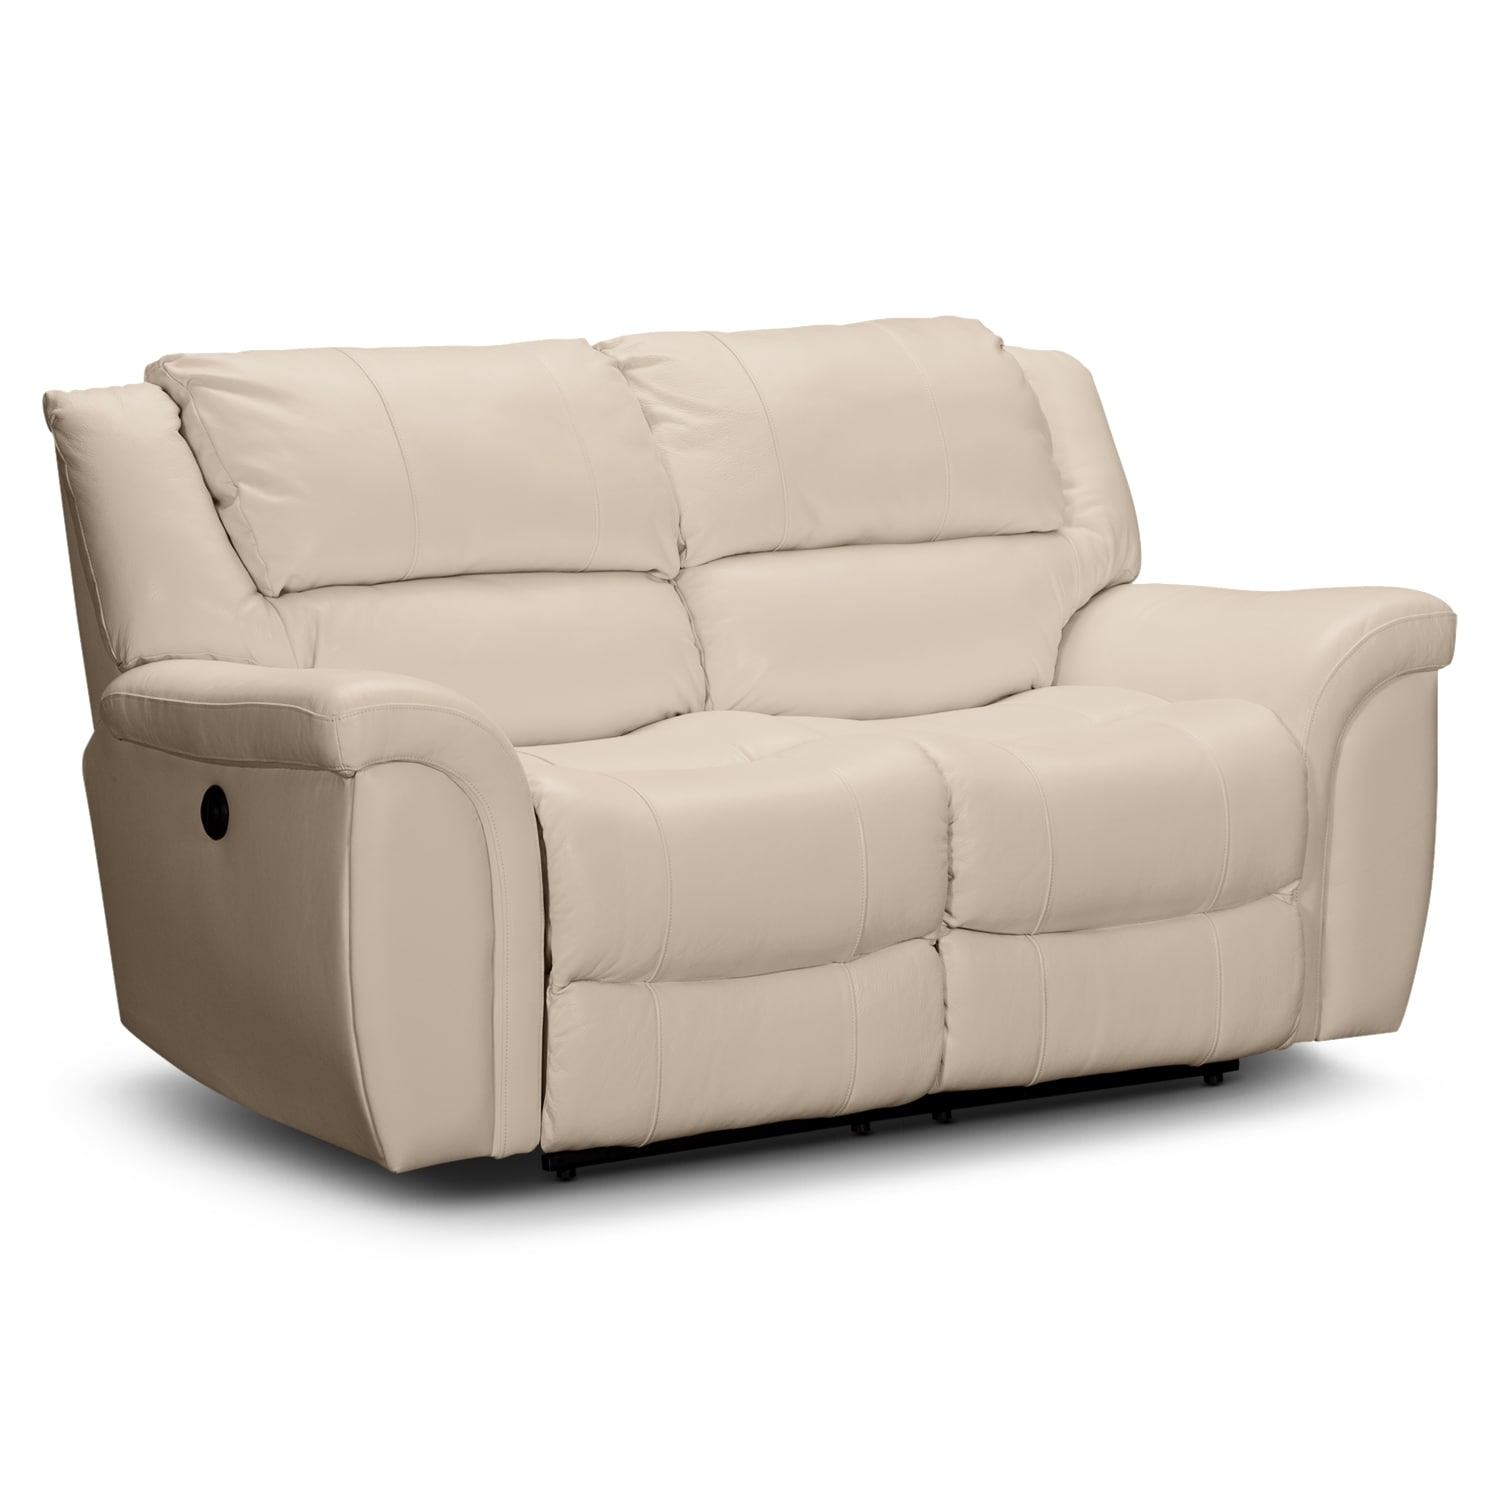 Power Reclining Sofas And Loveseats Pictures To Pin On